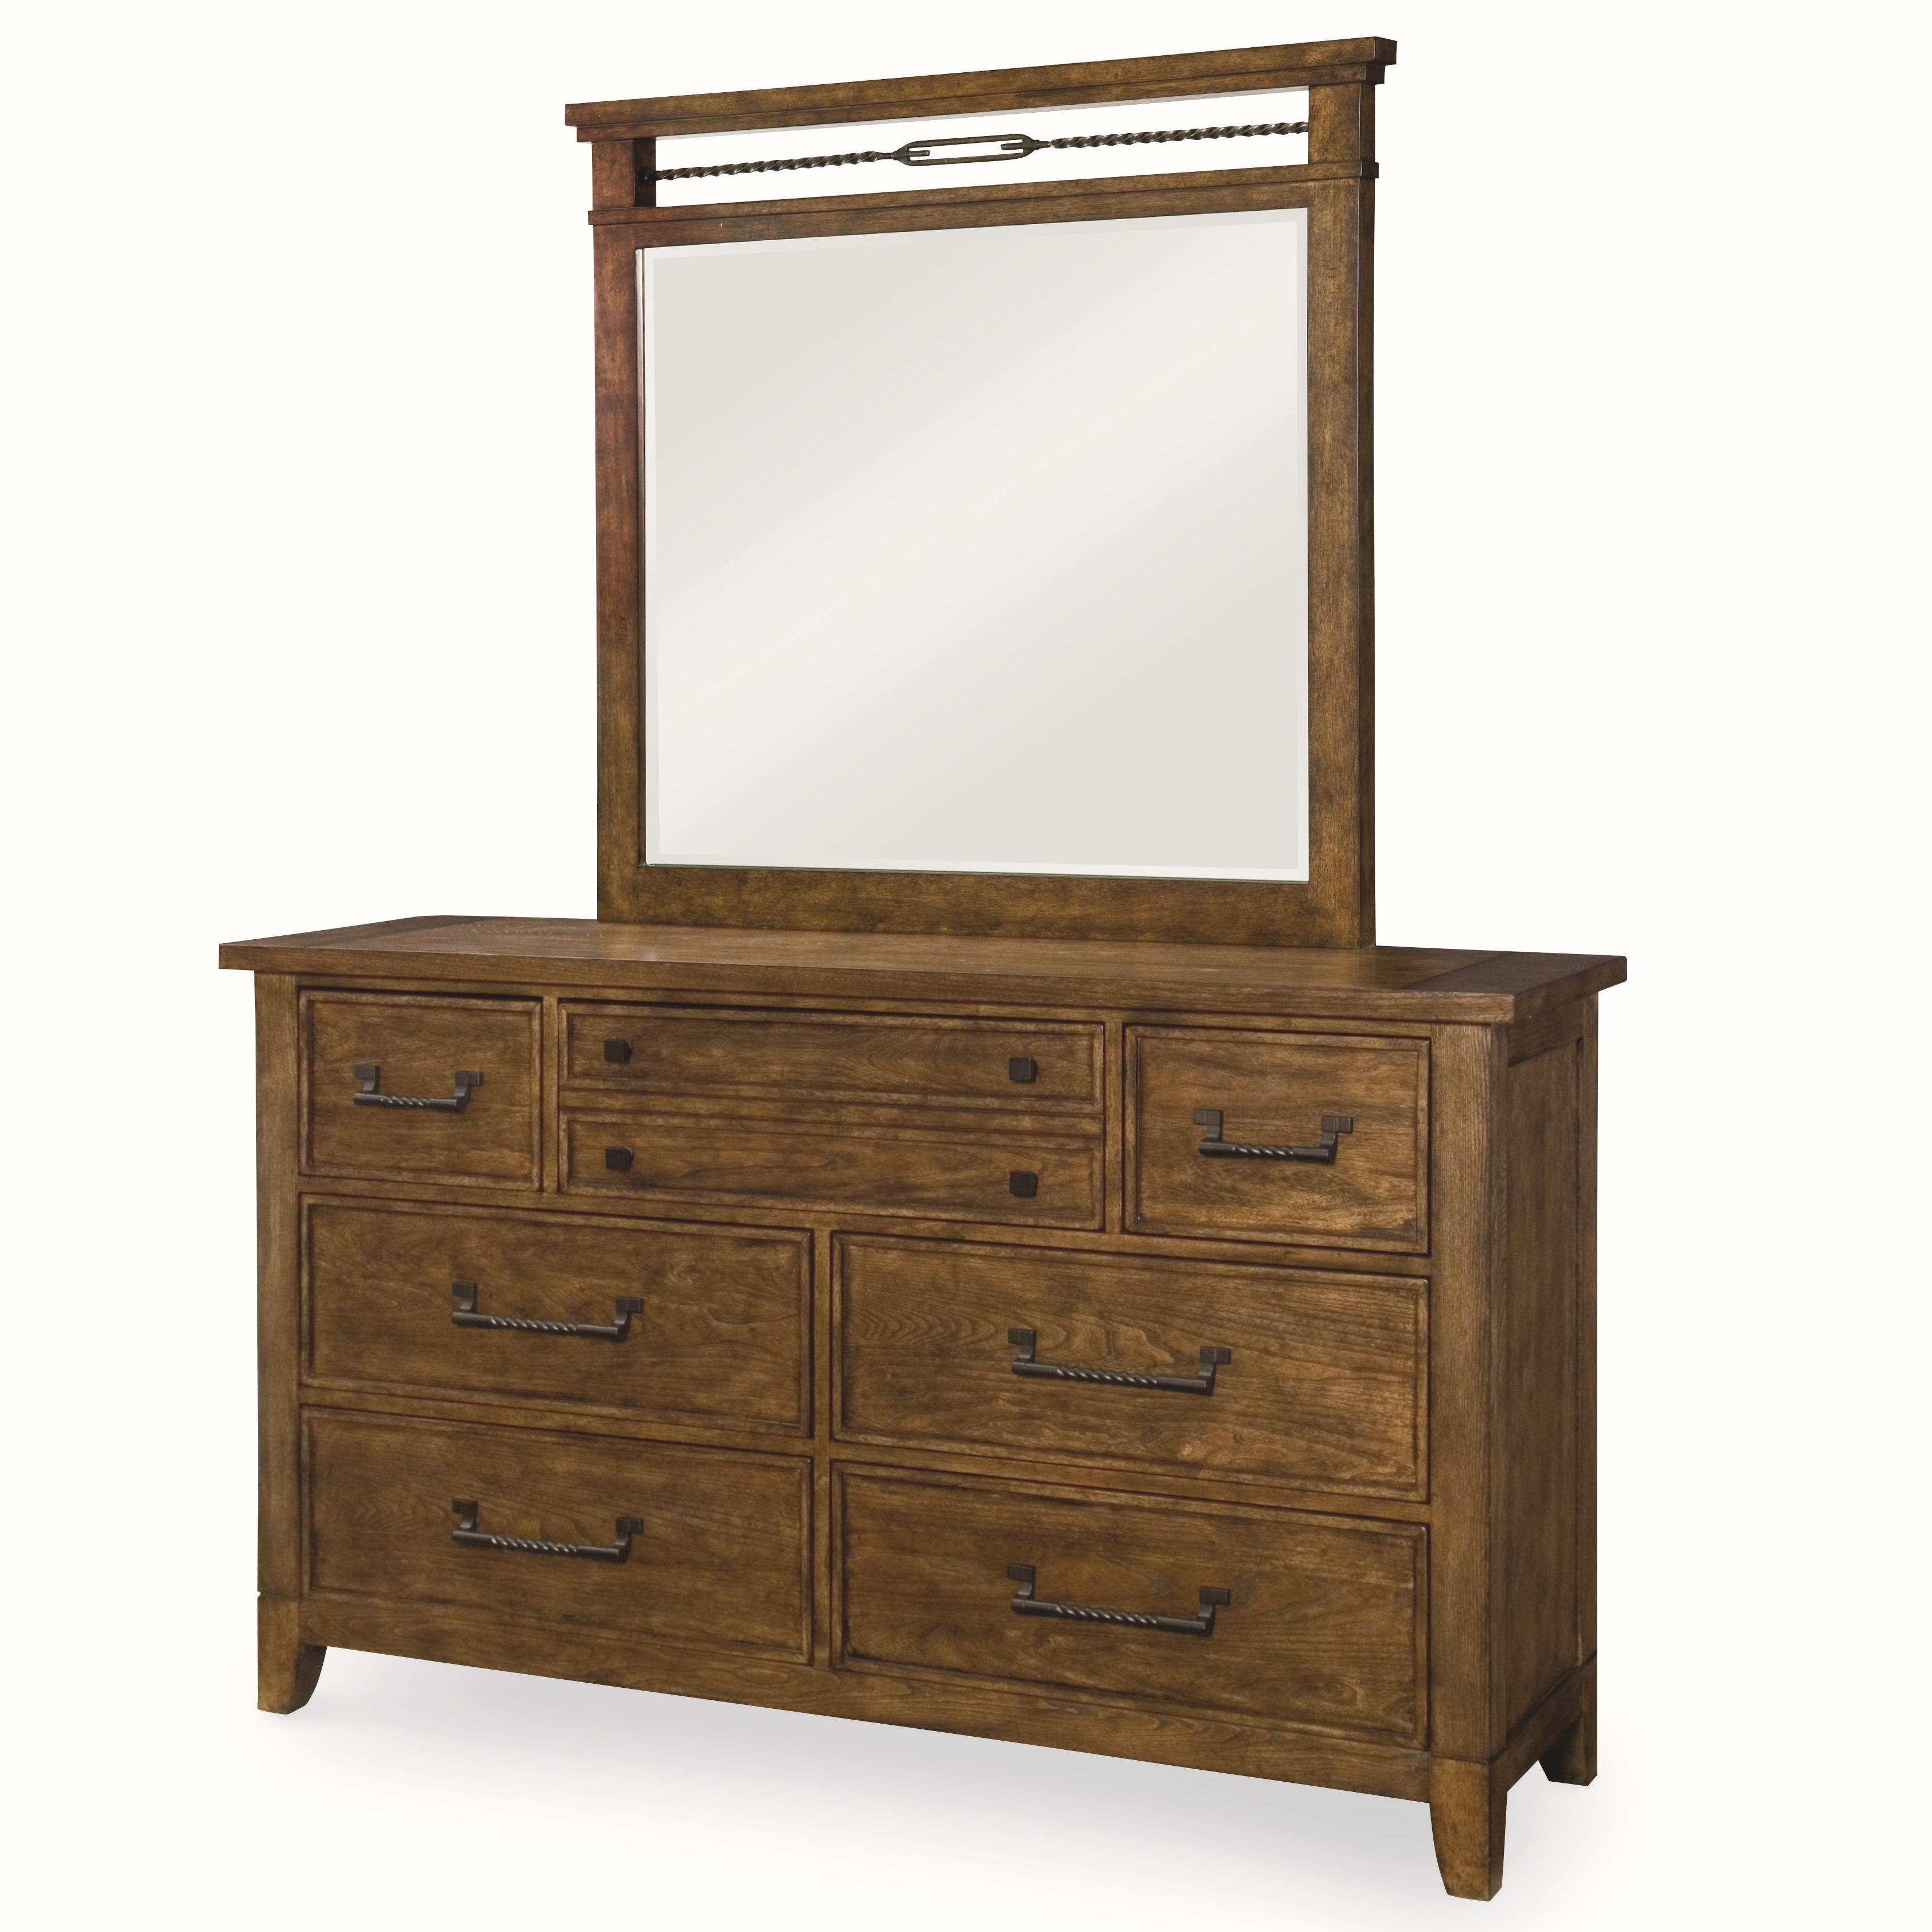 Legacy Classic River Run Dresser and Mirror Set - Item Number: 4740-1200+0200